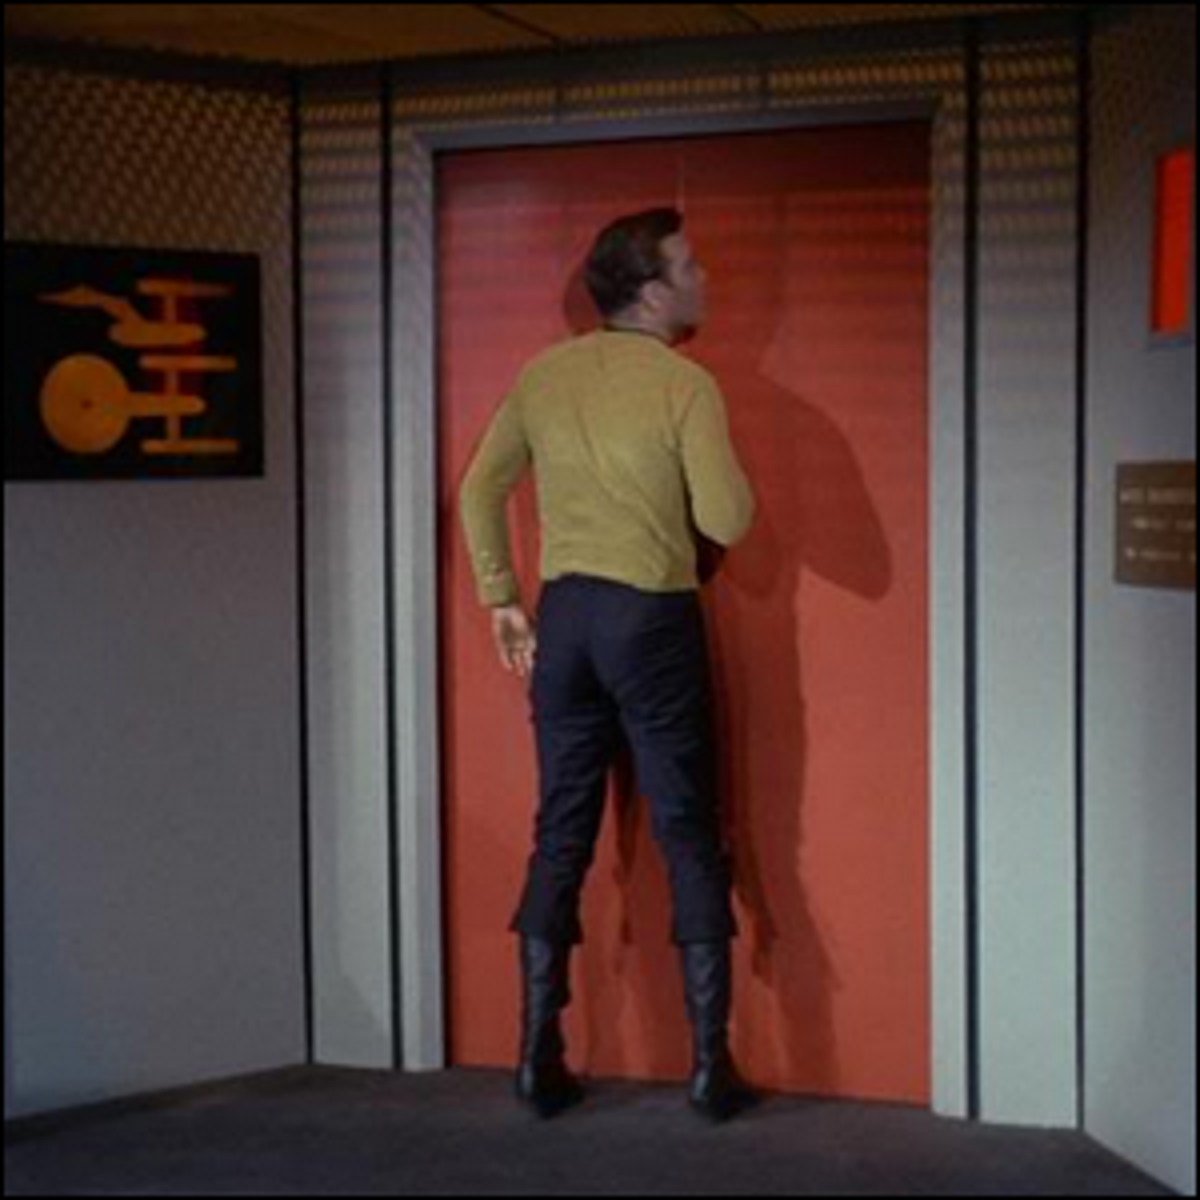 Actor William Shatner bumping into closed doors on the set of Star Trek TOS.